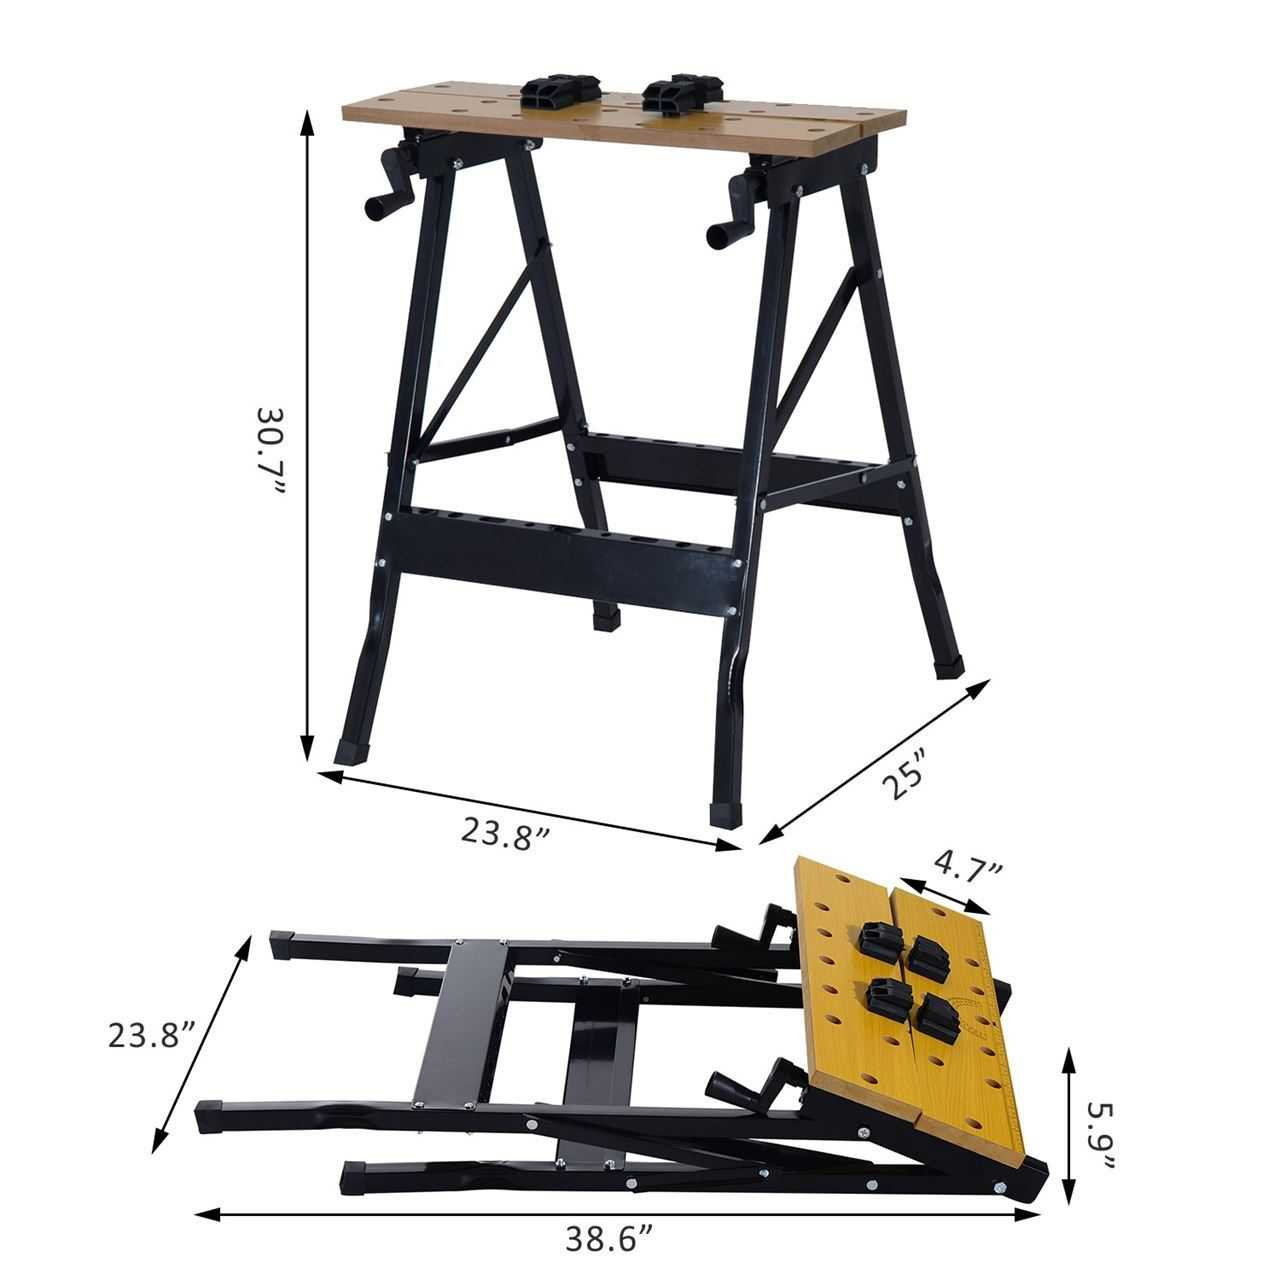 25 Adjustable Folding Portable Work Bench and vise  385lb Capacity